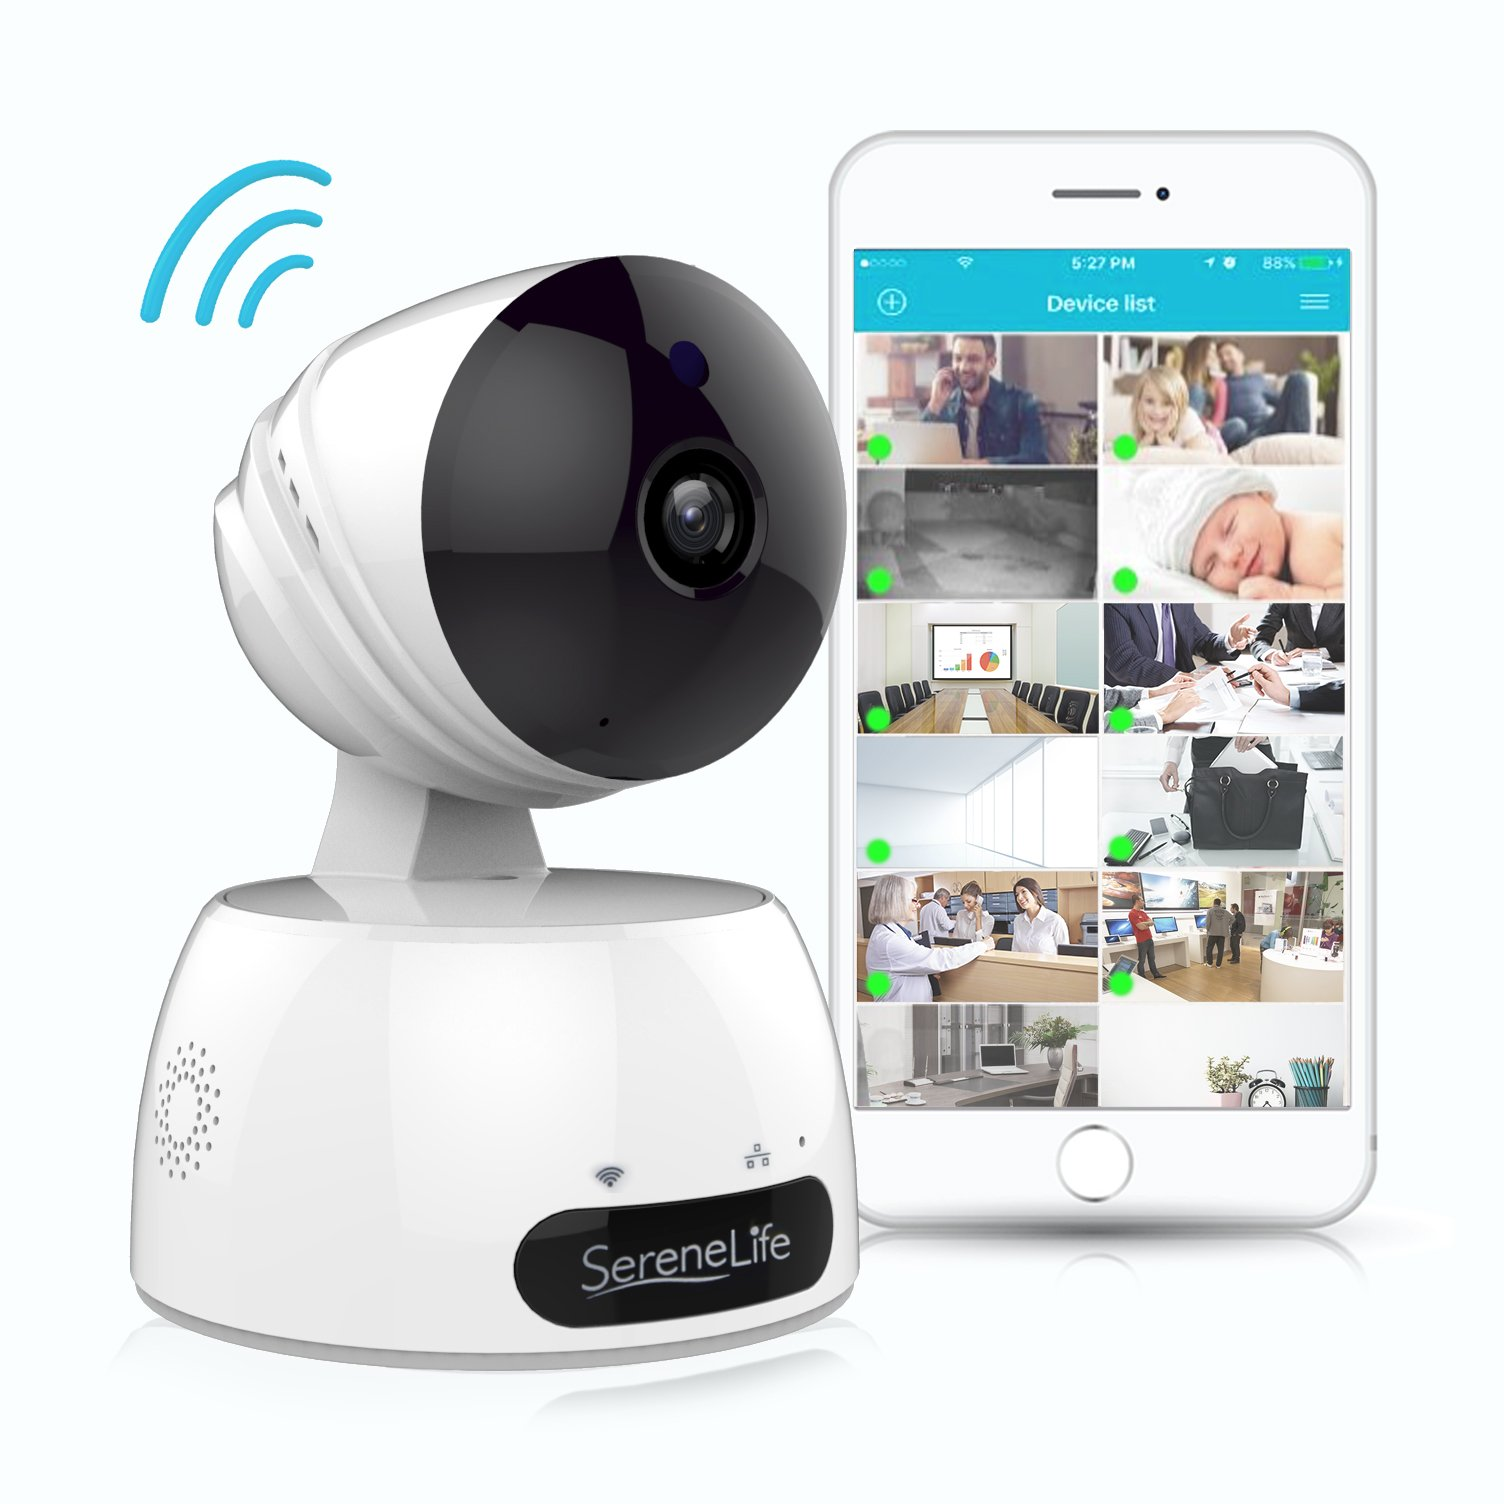 SereneLife Indoor Wireless IP Camera - HD 720p Network Security Surveillance Home Monitoring w/Motion Detection, Night Vision, PTZ, 2 Way Audio, iPhone Android Mobile App - PC WiFi Access - IPCAMHD30